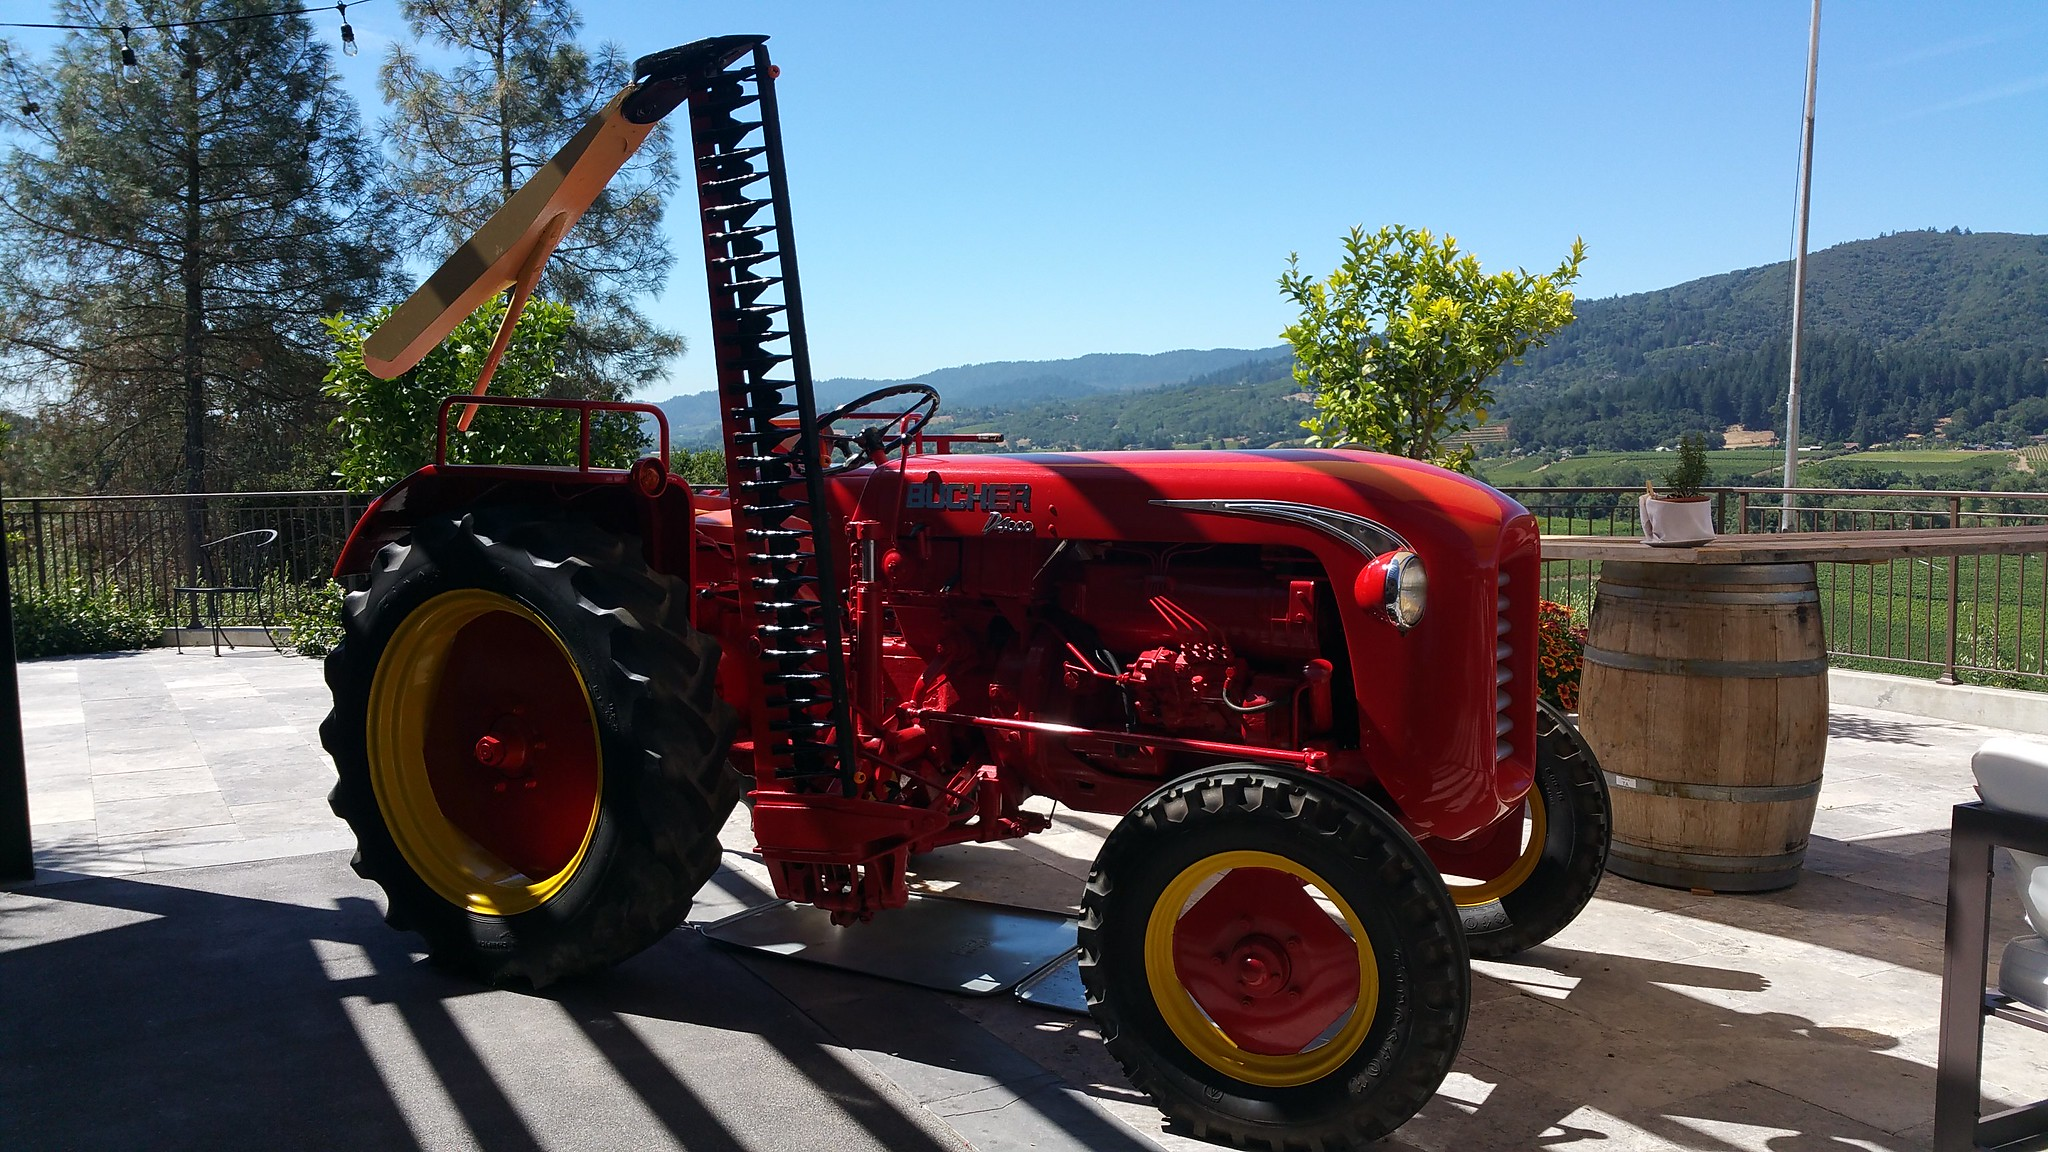 The tractor that is inspiration for Trattore's wine and can be seen on their wine labels